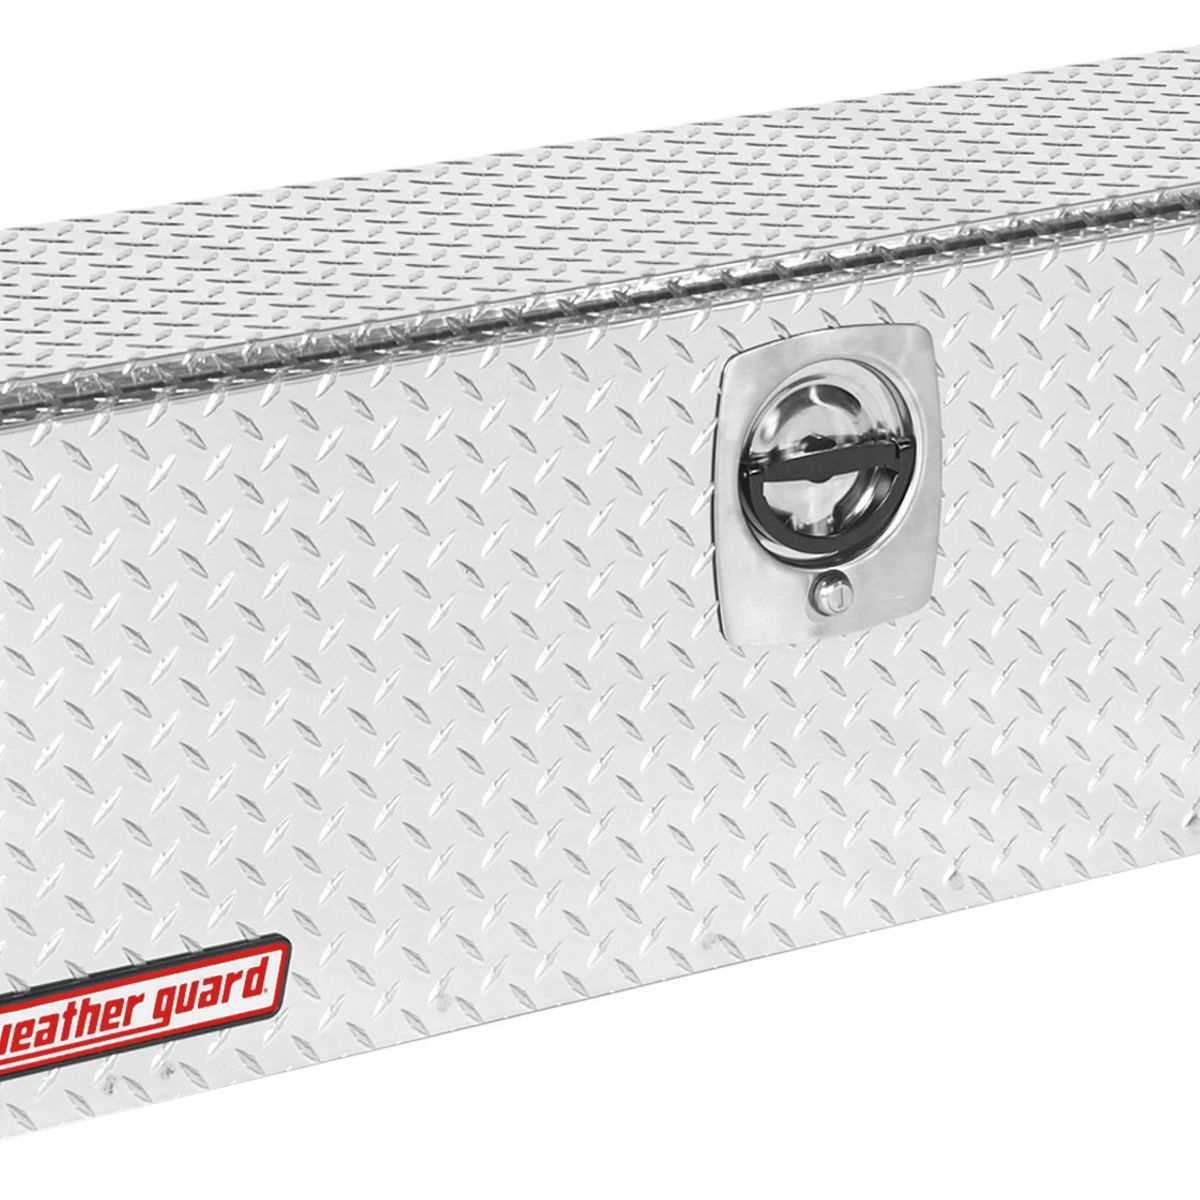 - 290-3-02 Aluminum Cover Topside Truck Box Weather Guard Steel Body ft 11.1 cu Double White